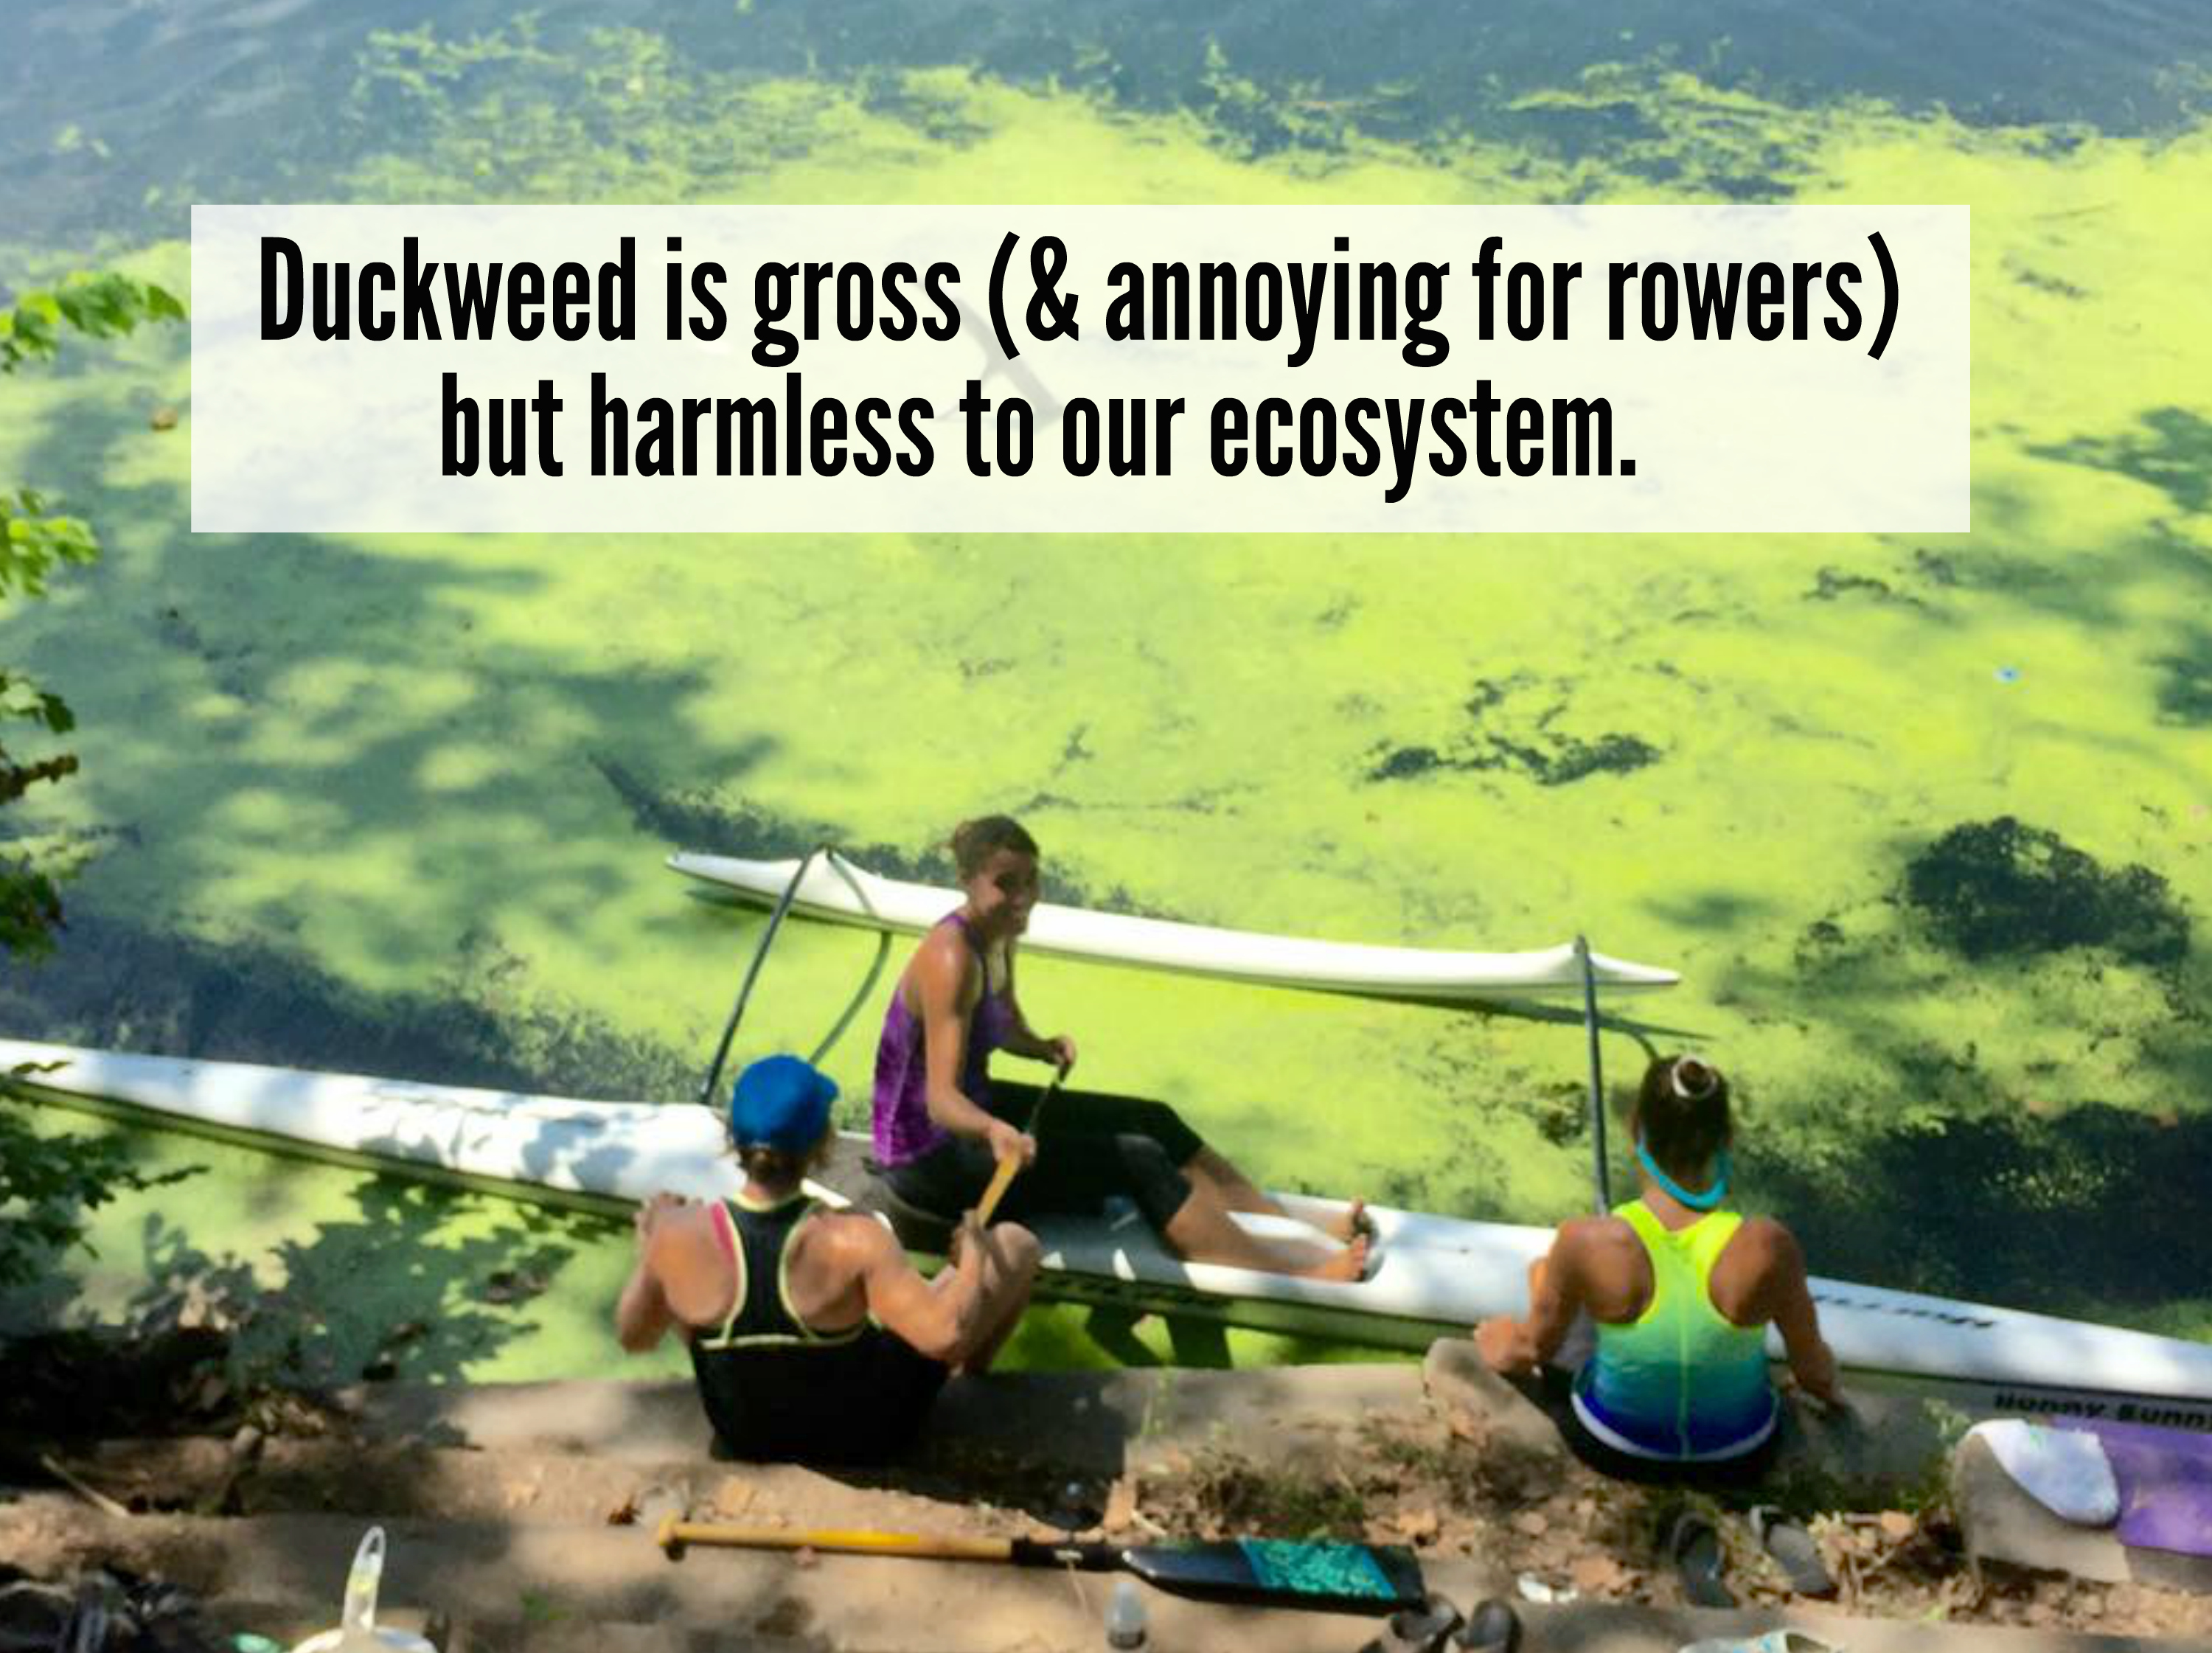 EastFallsLocal duckweed rowers text